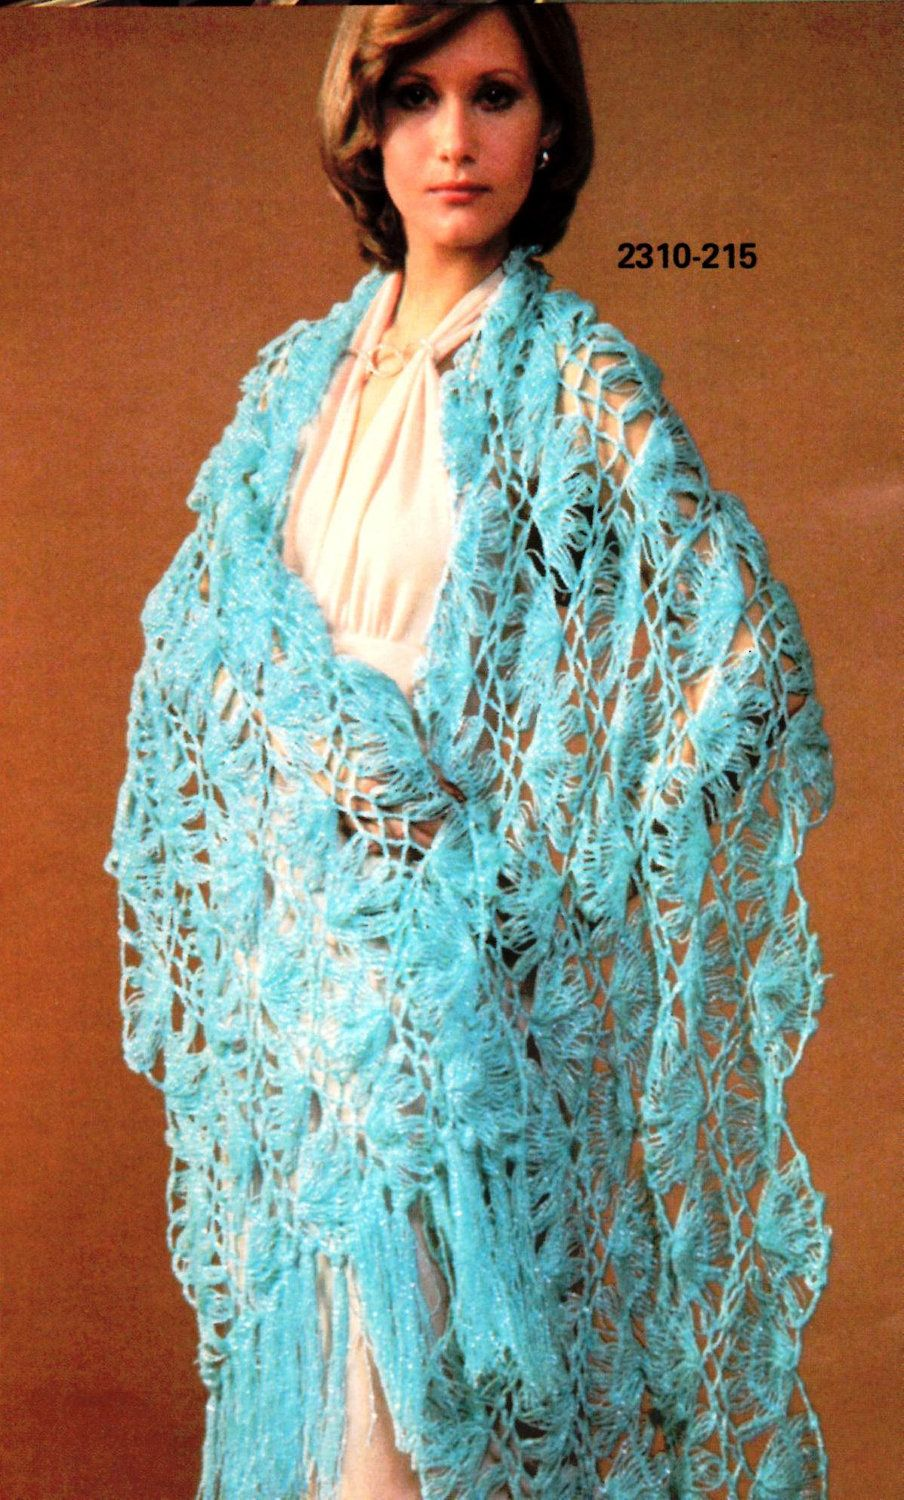 Shawlcrochetpatterns vintage hairpin lace crochet shawl shawlcrochetpatterns vintage hairpin lace crochet shawl pattern instant download bankloansurffo Image collections